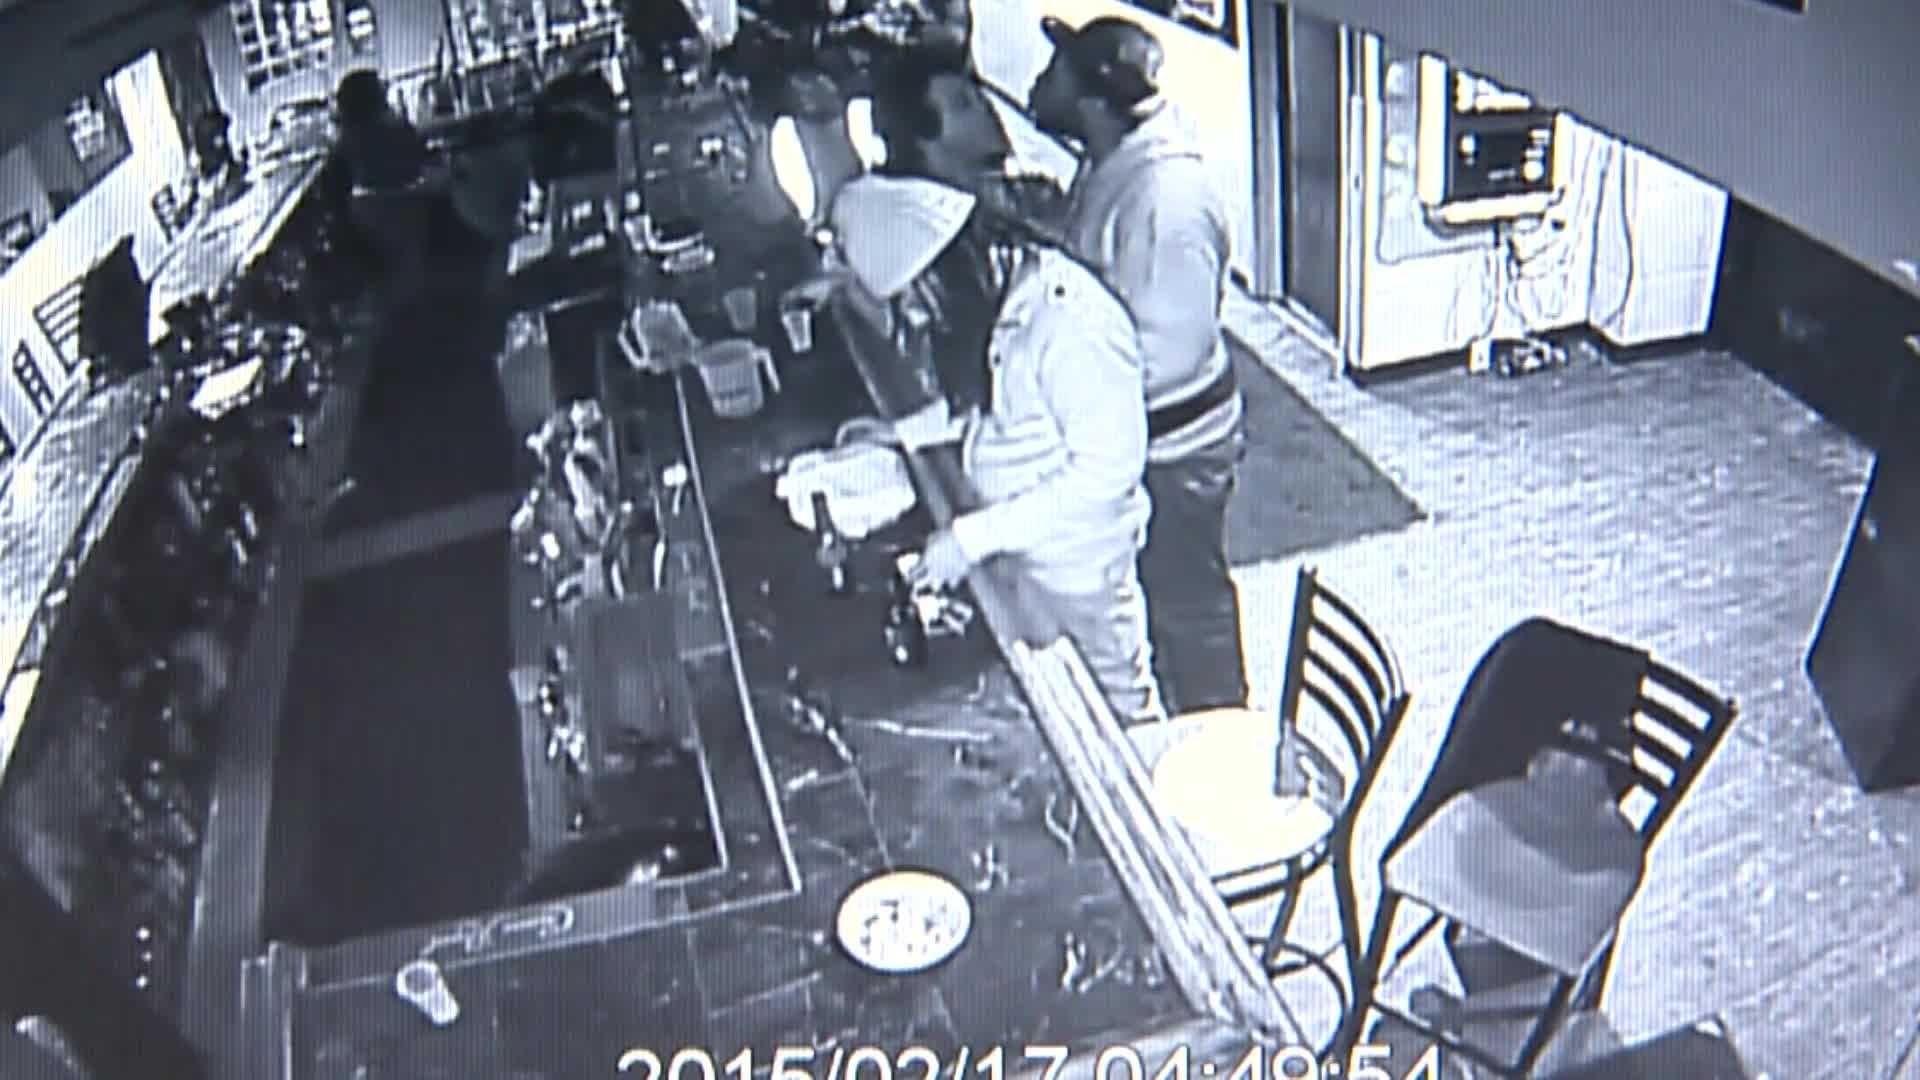 Security video shows deadly confrontation at Homewood bar